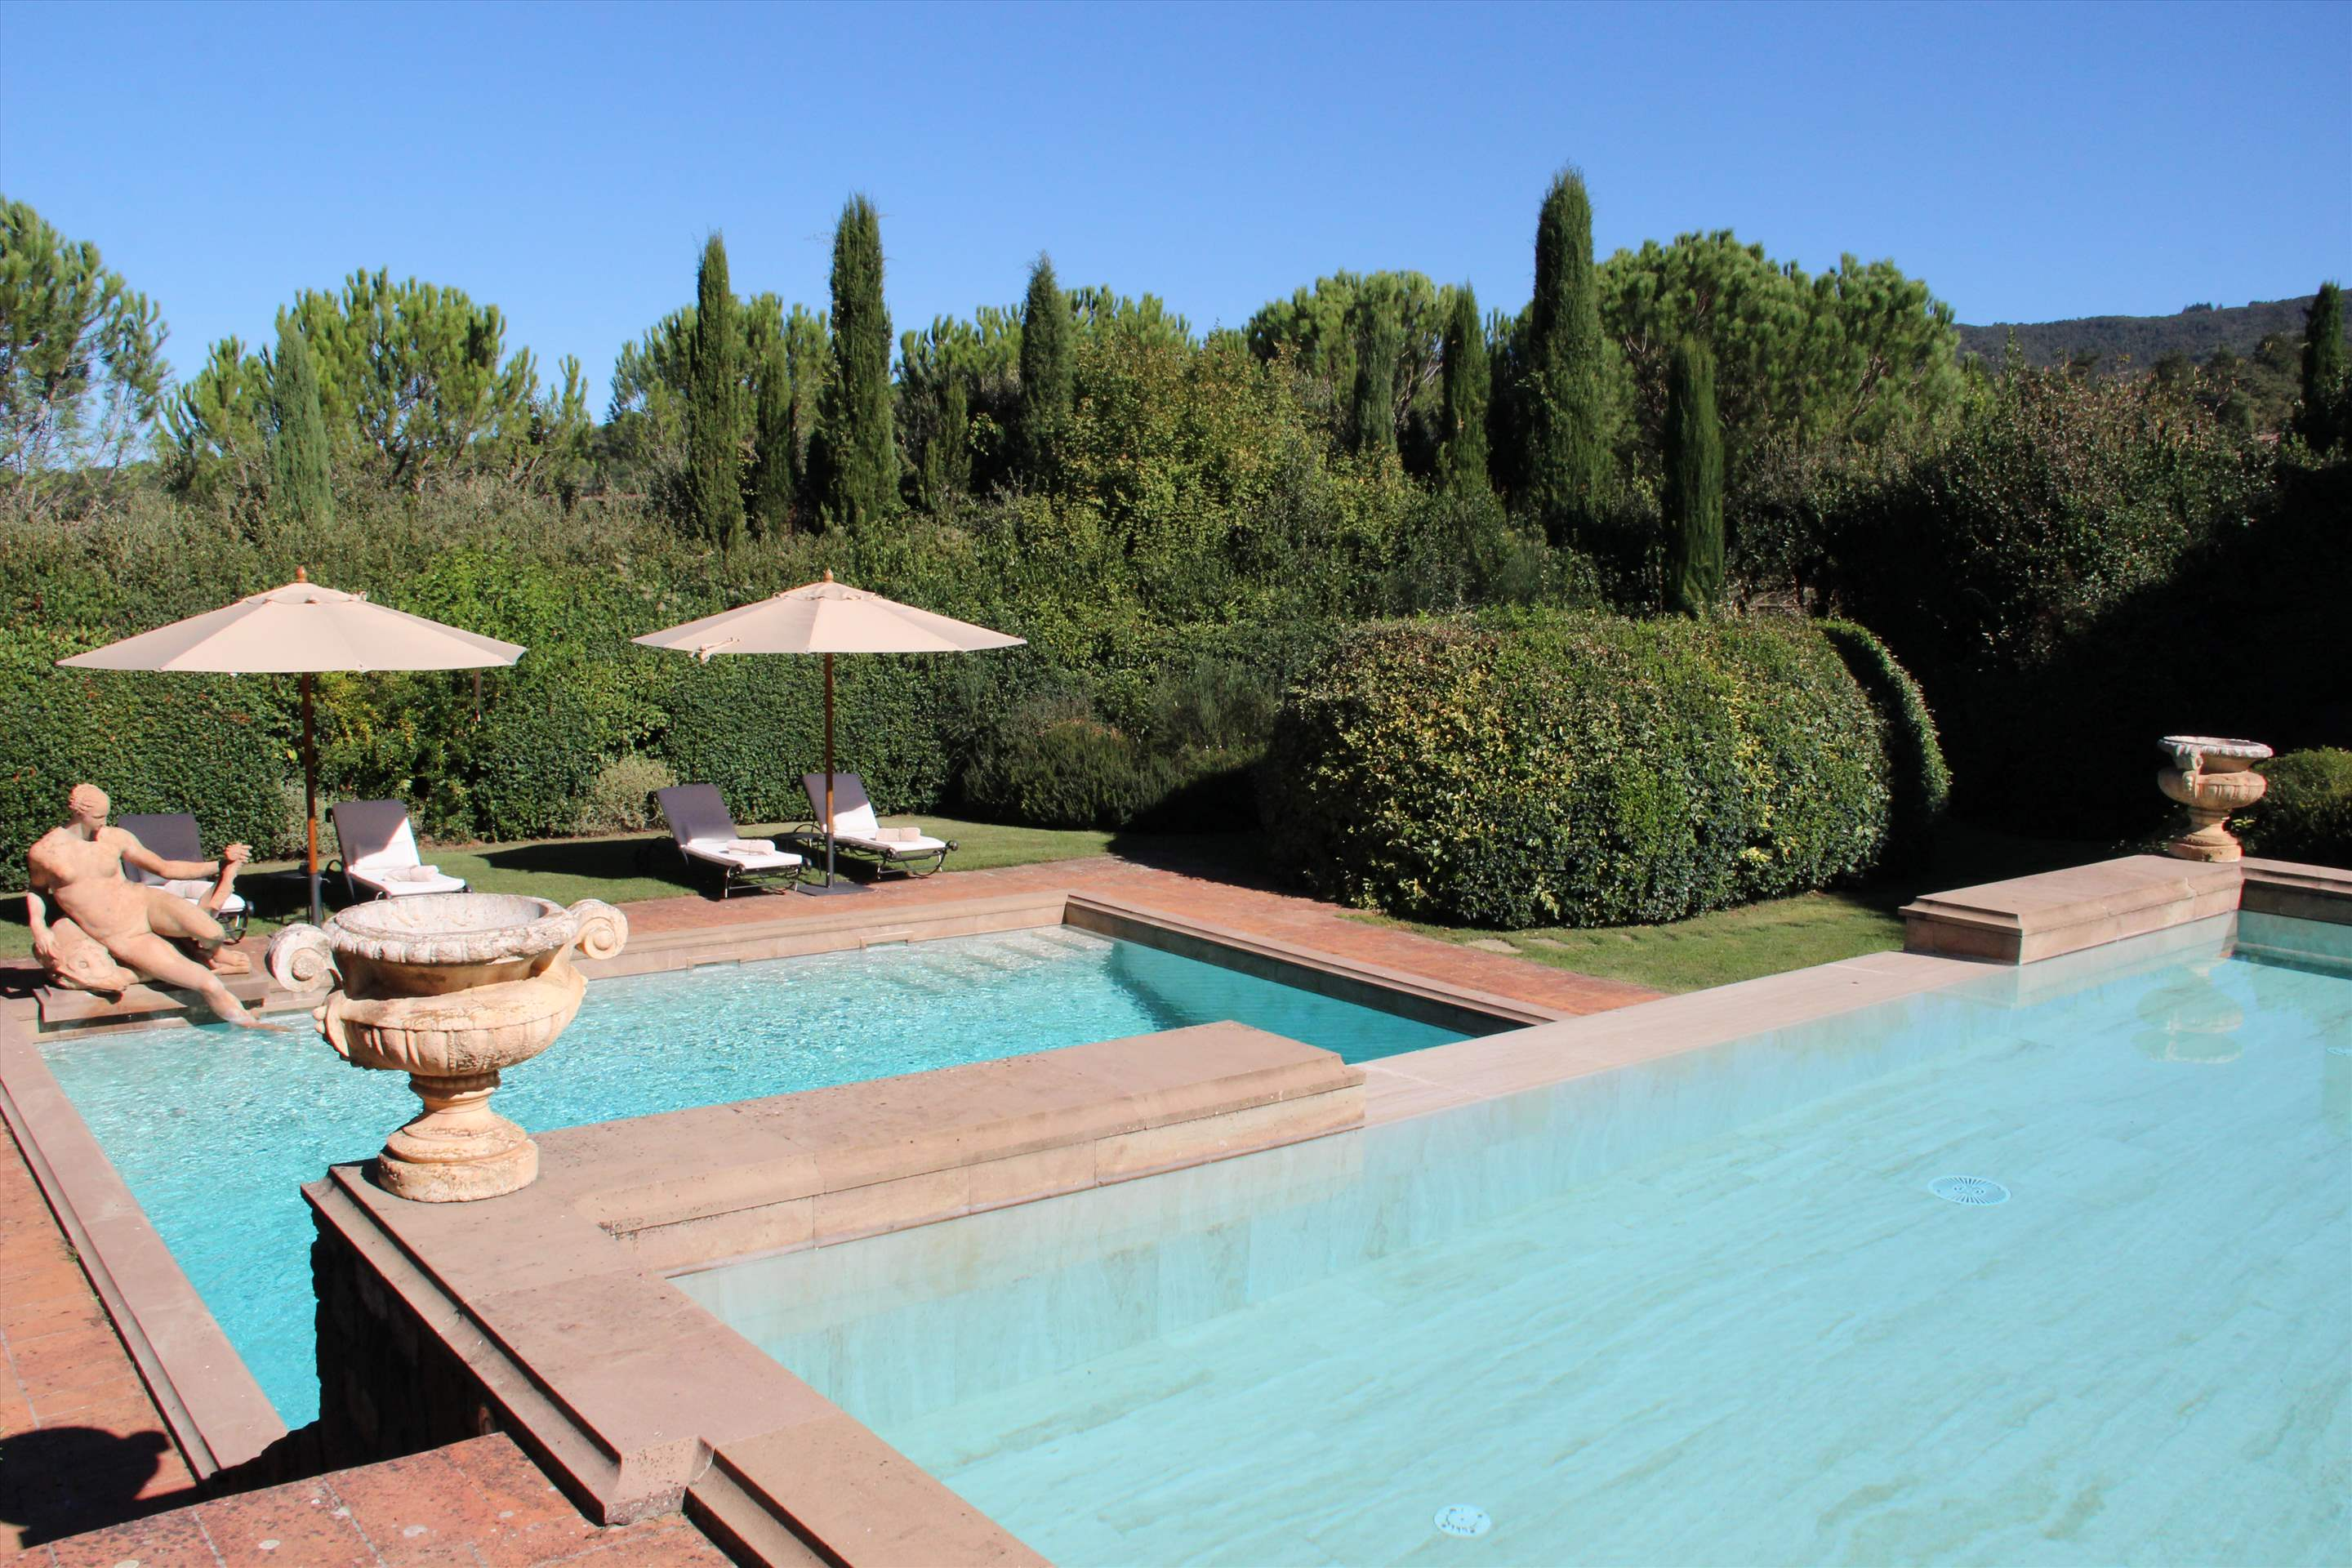 Villa Tuscan, 6 (+2), 3 bedroom villa in Chianti & Countryside, Tuscany Photo #1